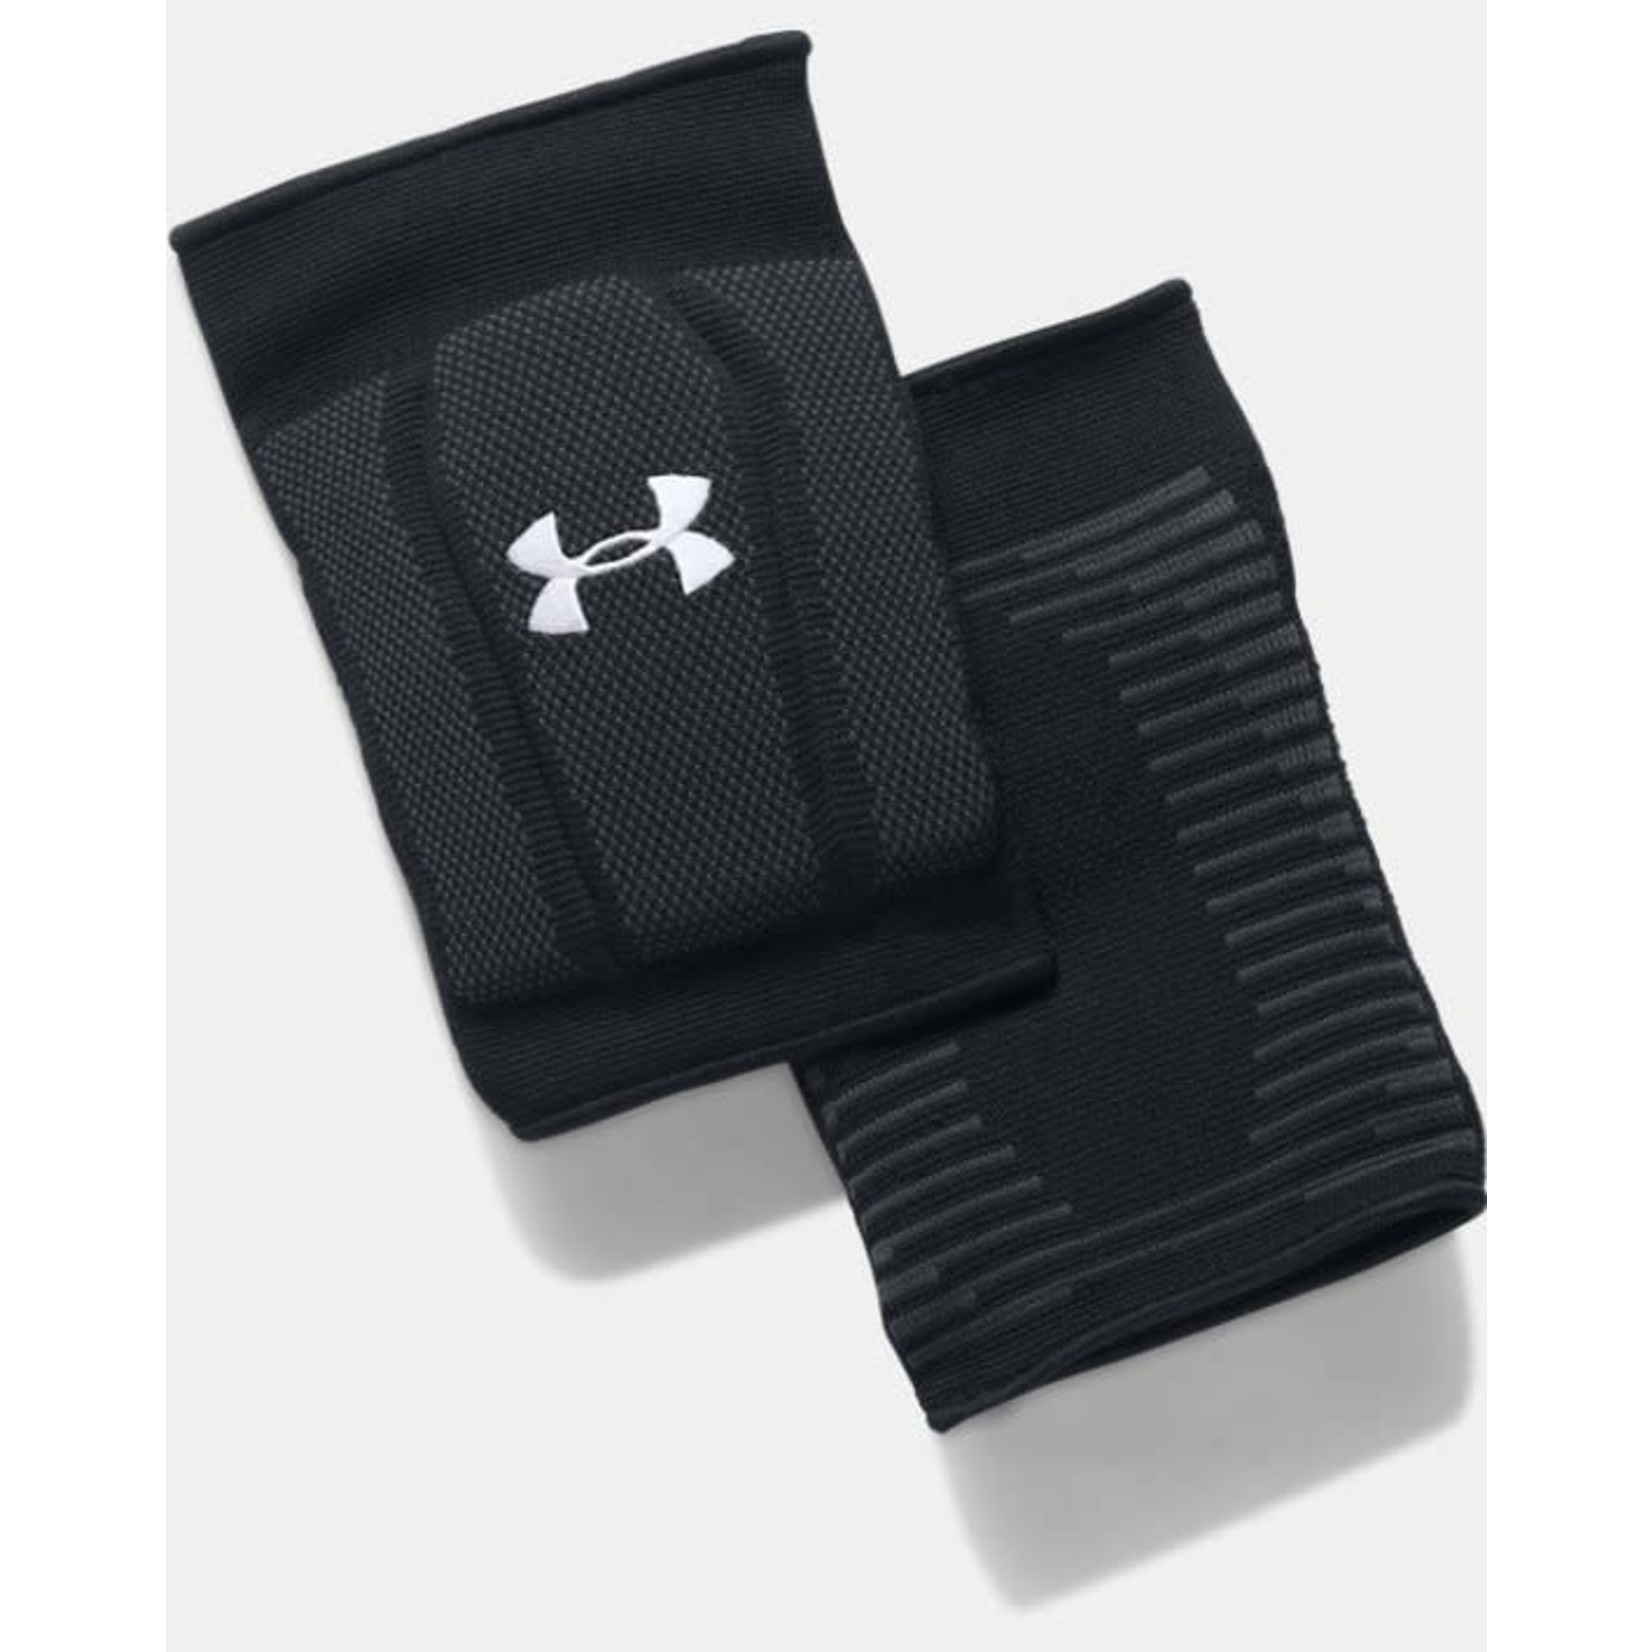 Under Armour Under Armour Volleyball Knee Pads, Armour 2.0